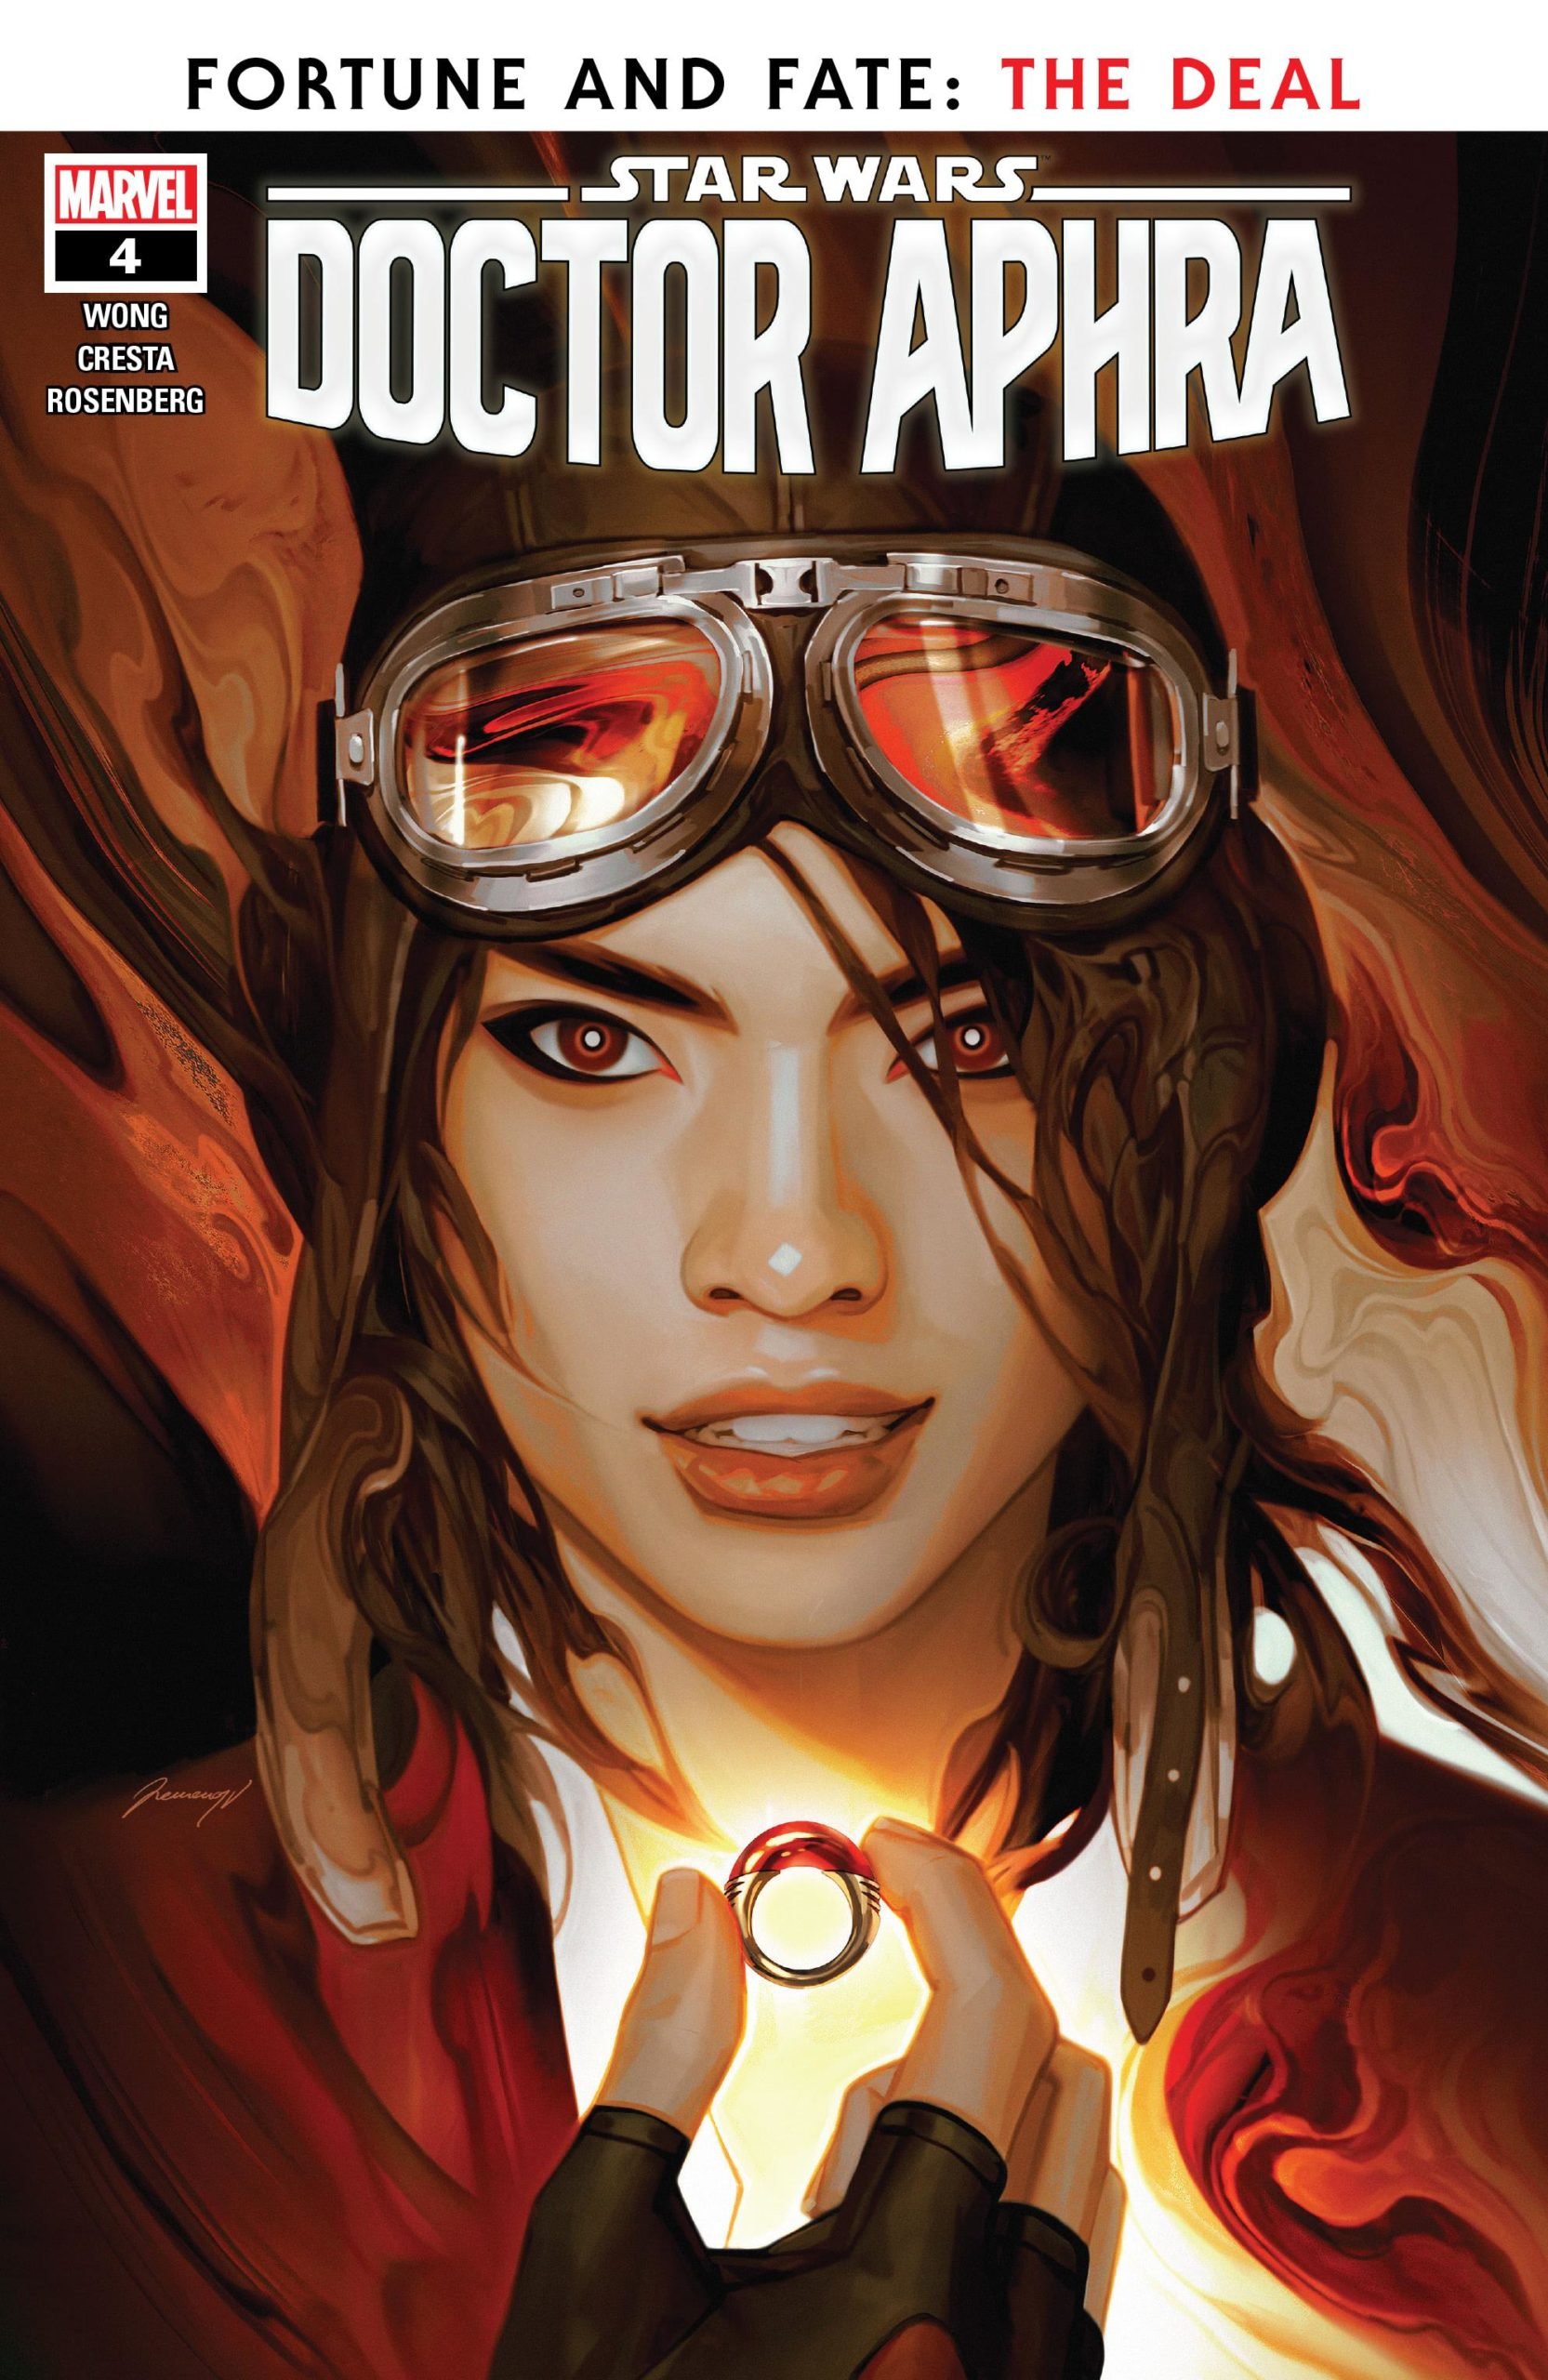 Doctor Aphra #4 (10.06.2020)